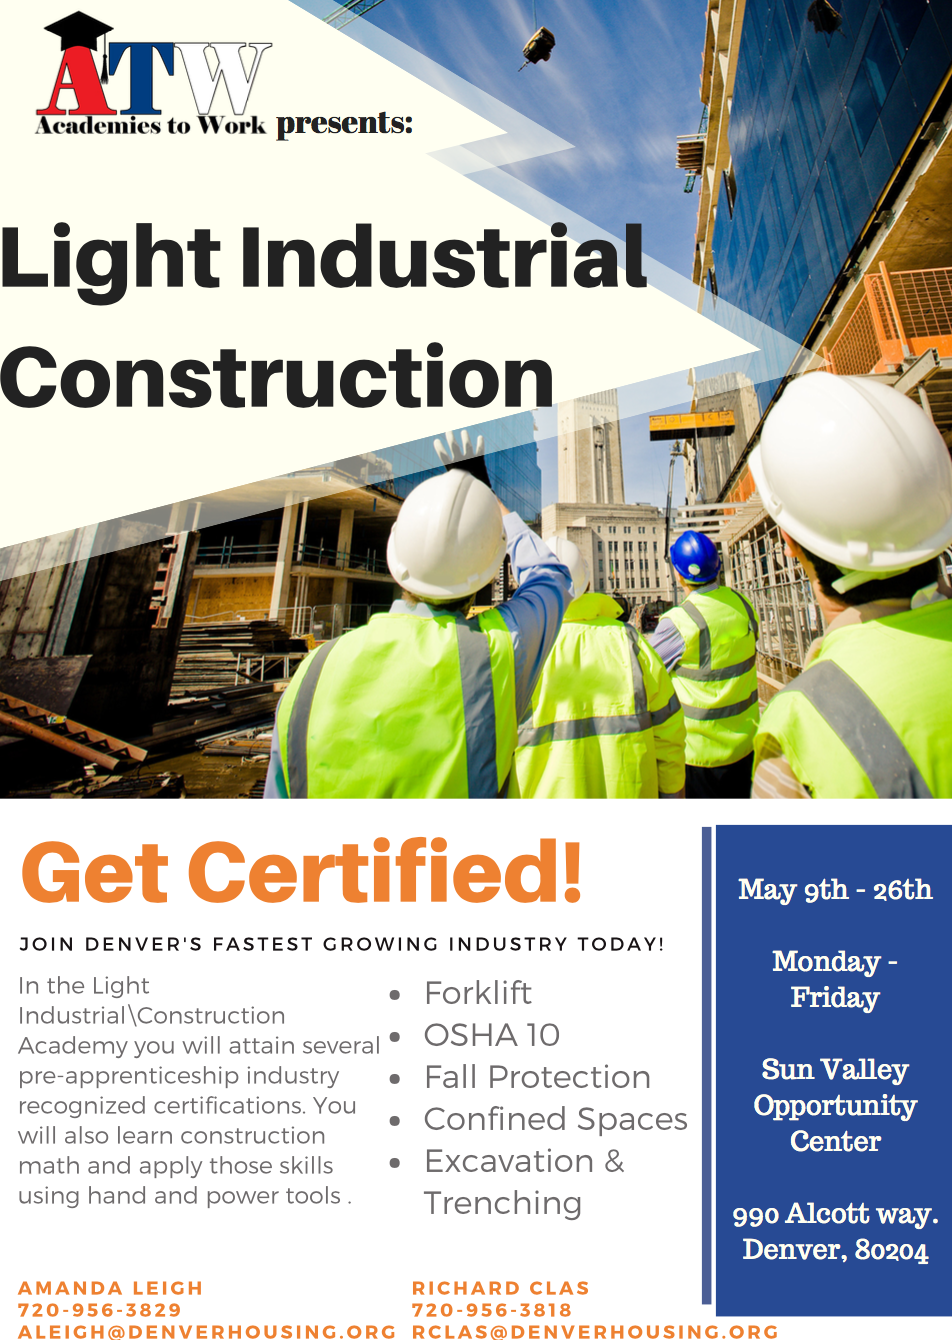 Academies to Work Light Industrial Construction  Get Certified! JOIN DENVER'S FASTEST GROWING INDUSTRY TODAY!   In the Light Industrial\Construction Academy you will attain several pre-apprenticeship industry recognized certifications. You will also learn construction math and apply those skills using hand and power tools.  Presents: Forklift OSHA 10 Fall Protection Confined Spaces Excavation & Trenching  May 9th - 26th Monday - Friday Sun Valley Opportunity Center 990 Alcott way. Denver, 80204 A M A N D A LEI G H 7 2 0 - 9 5 6 - 382 9 A LEI G H @ D E N V E R H O U SI N G . O R G R IC H A R D CL A S 7 2 0 - 9 5 6 - 3818 R CL A S @ D E N V E R H O U SI N G . O R G